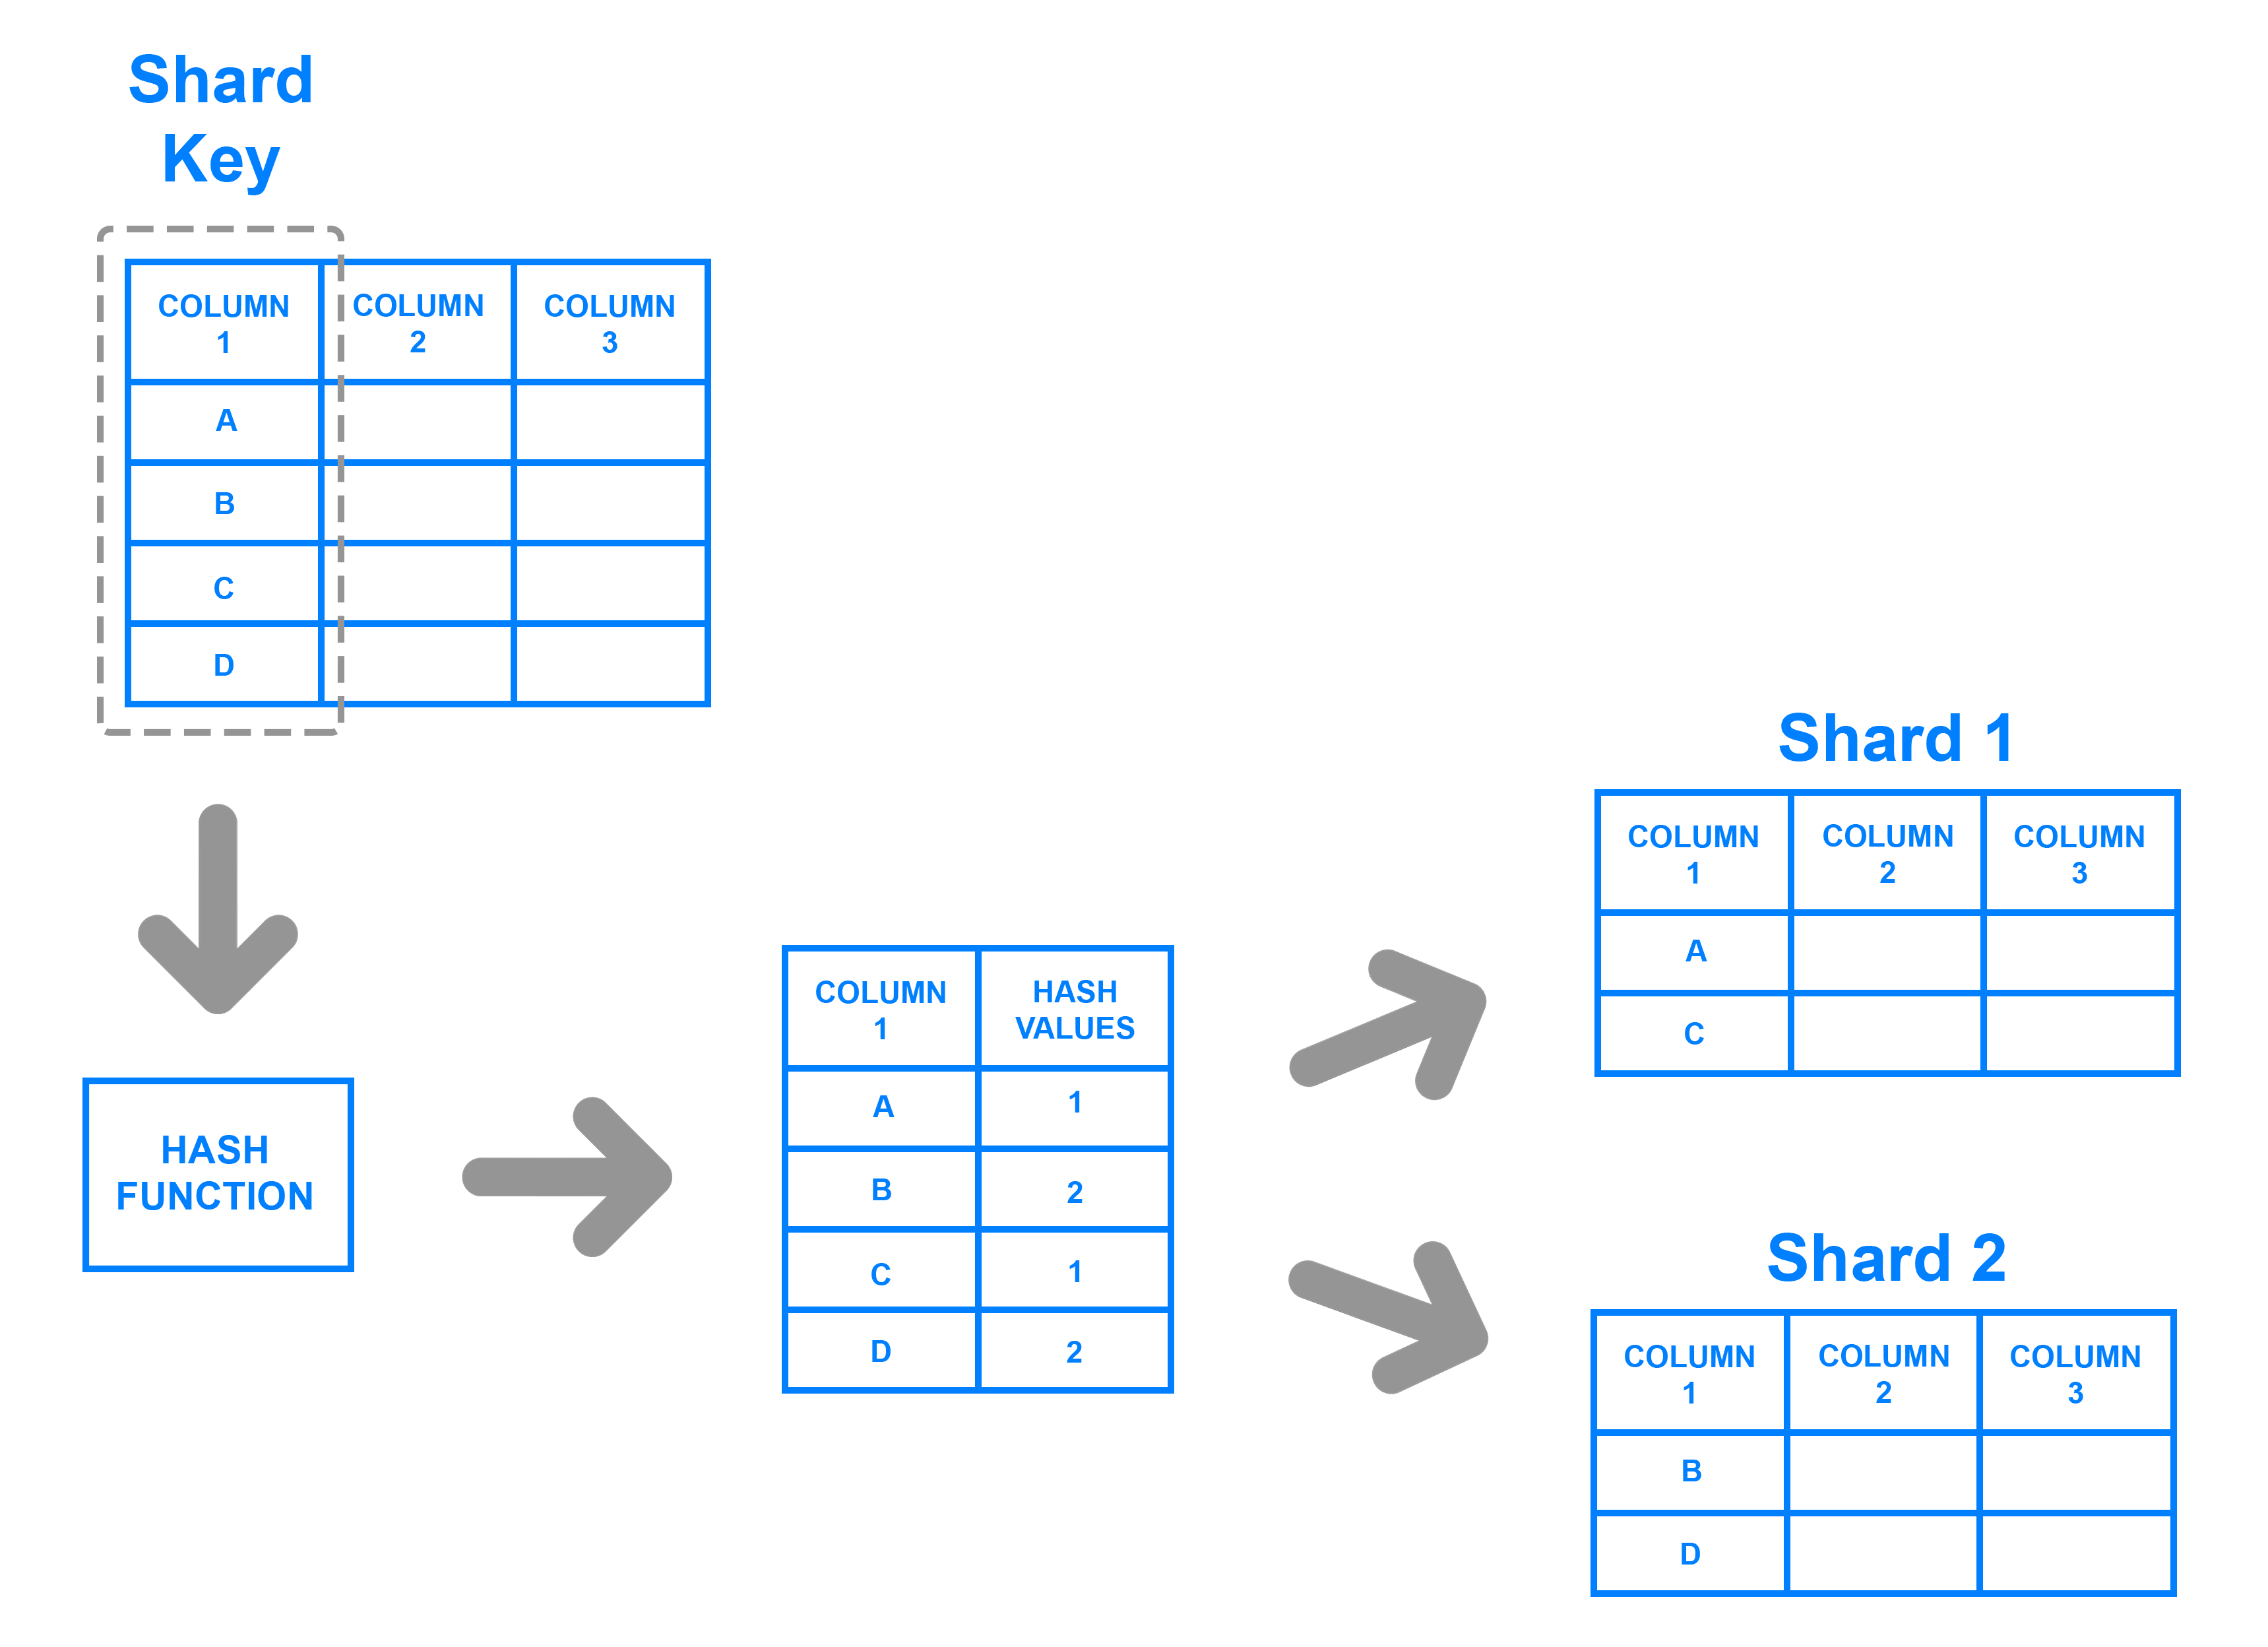 Key based sharding example diagram